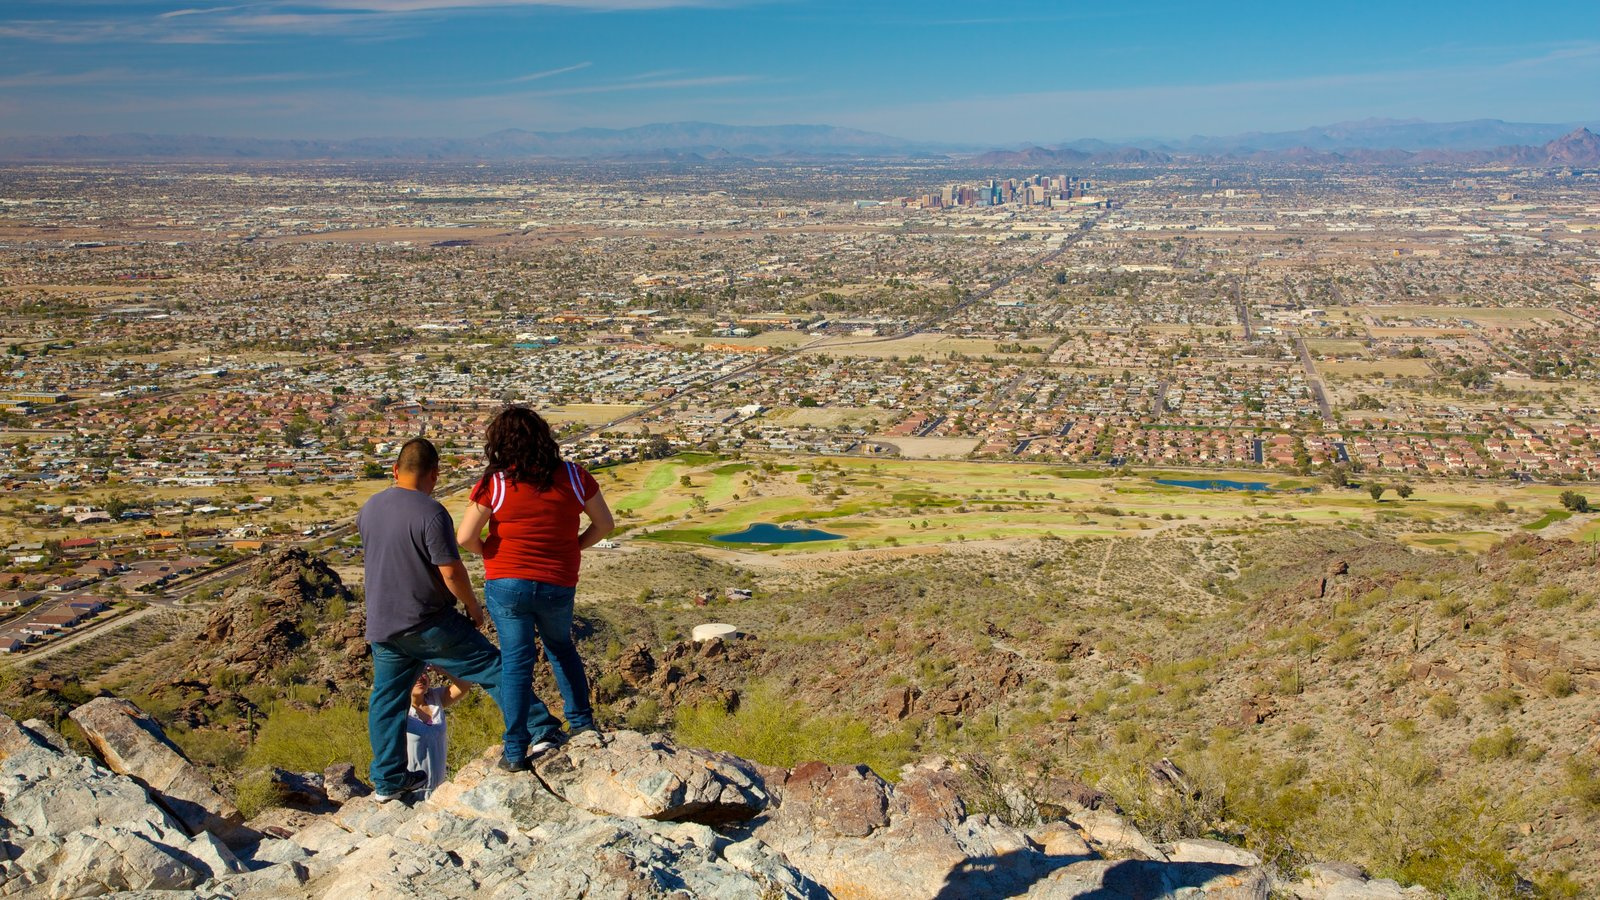 Phoenix which includes views, a city and hiking or walking